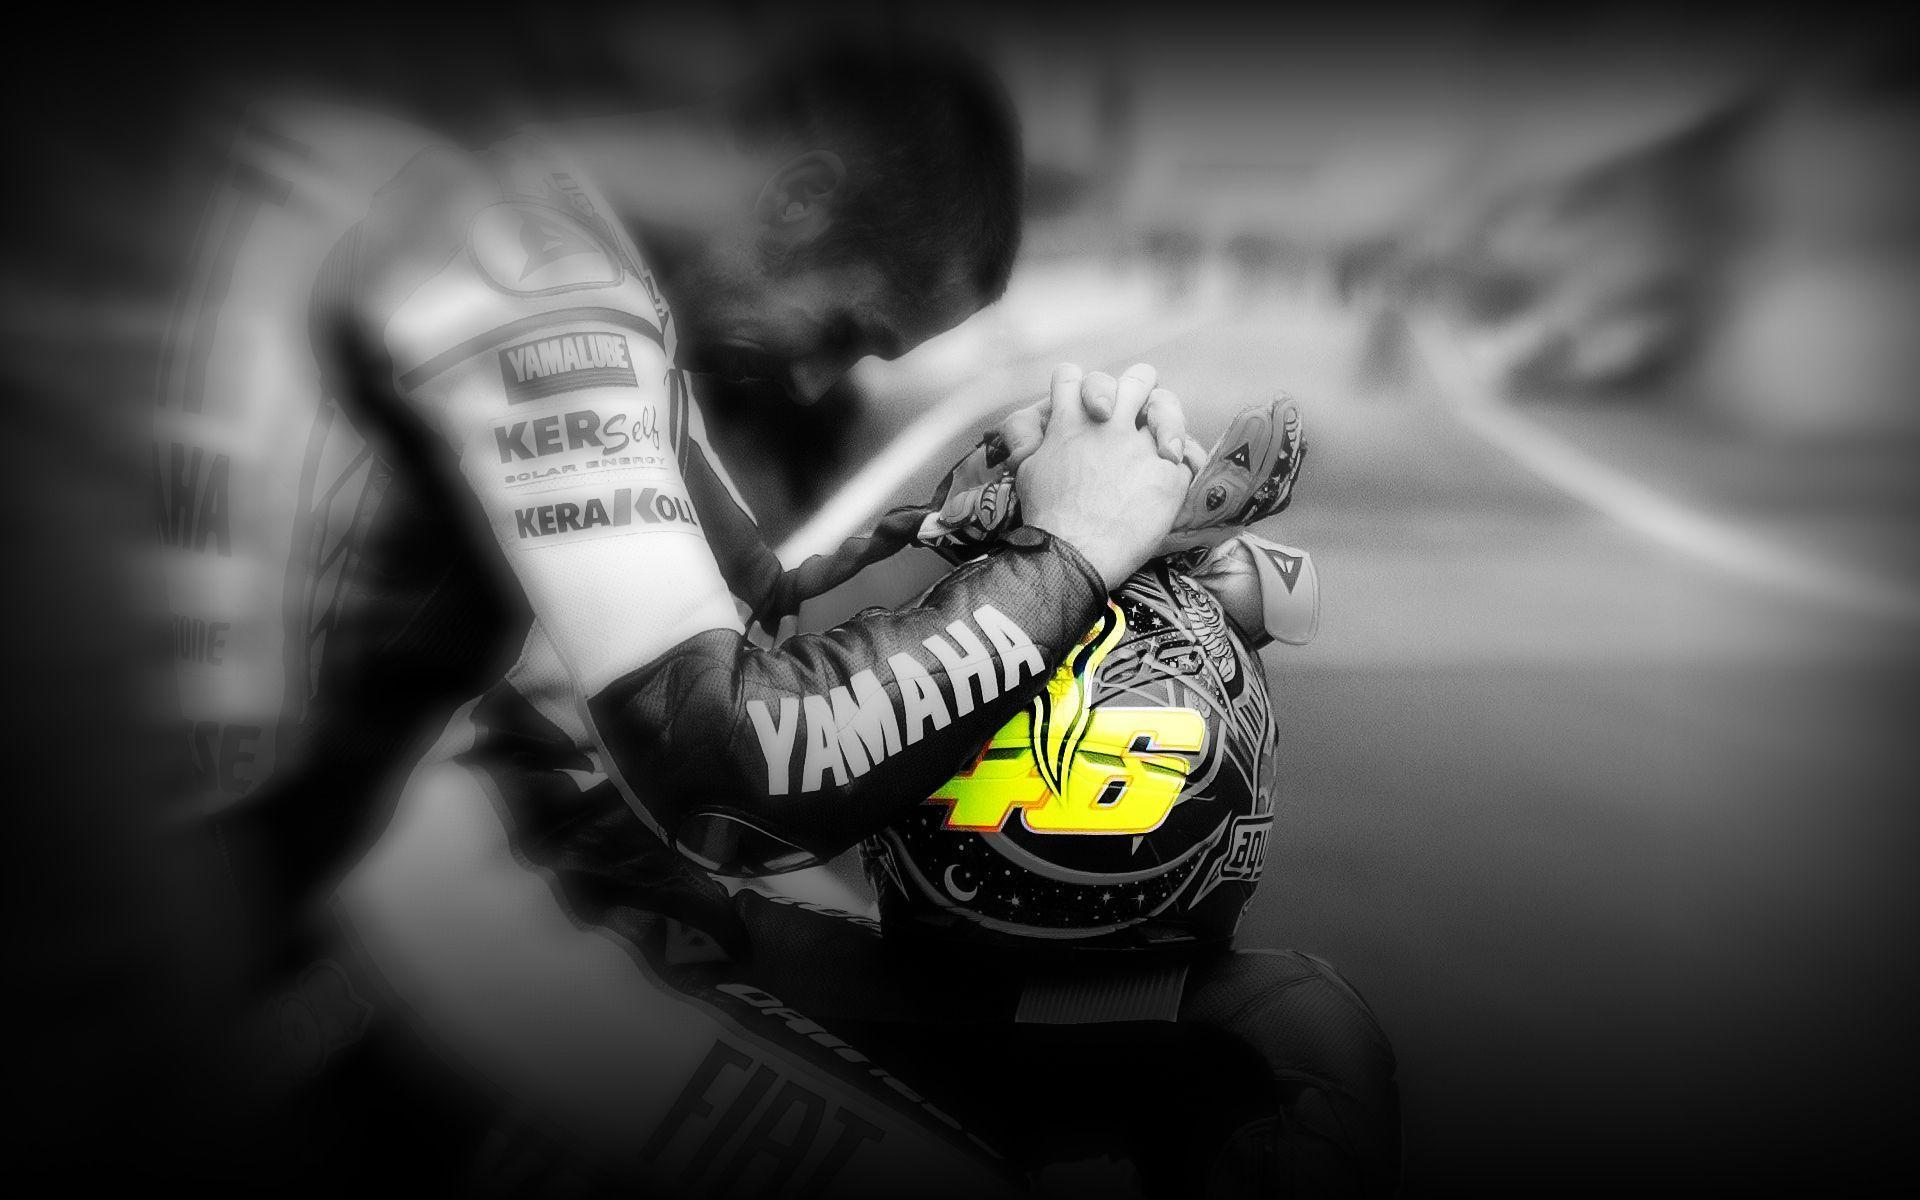 Collection of Valentino Rossi Wallpaper on HDWallpapers